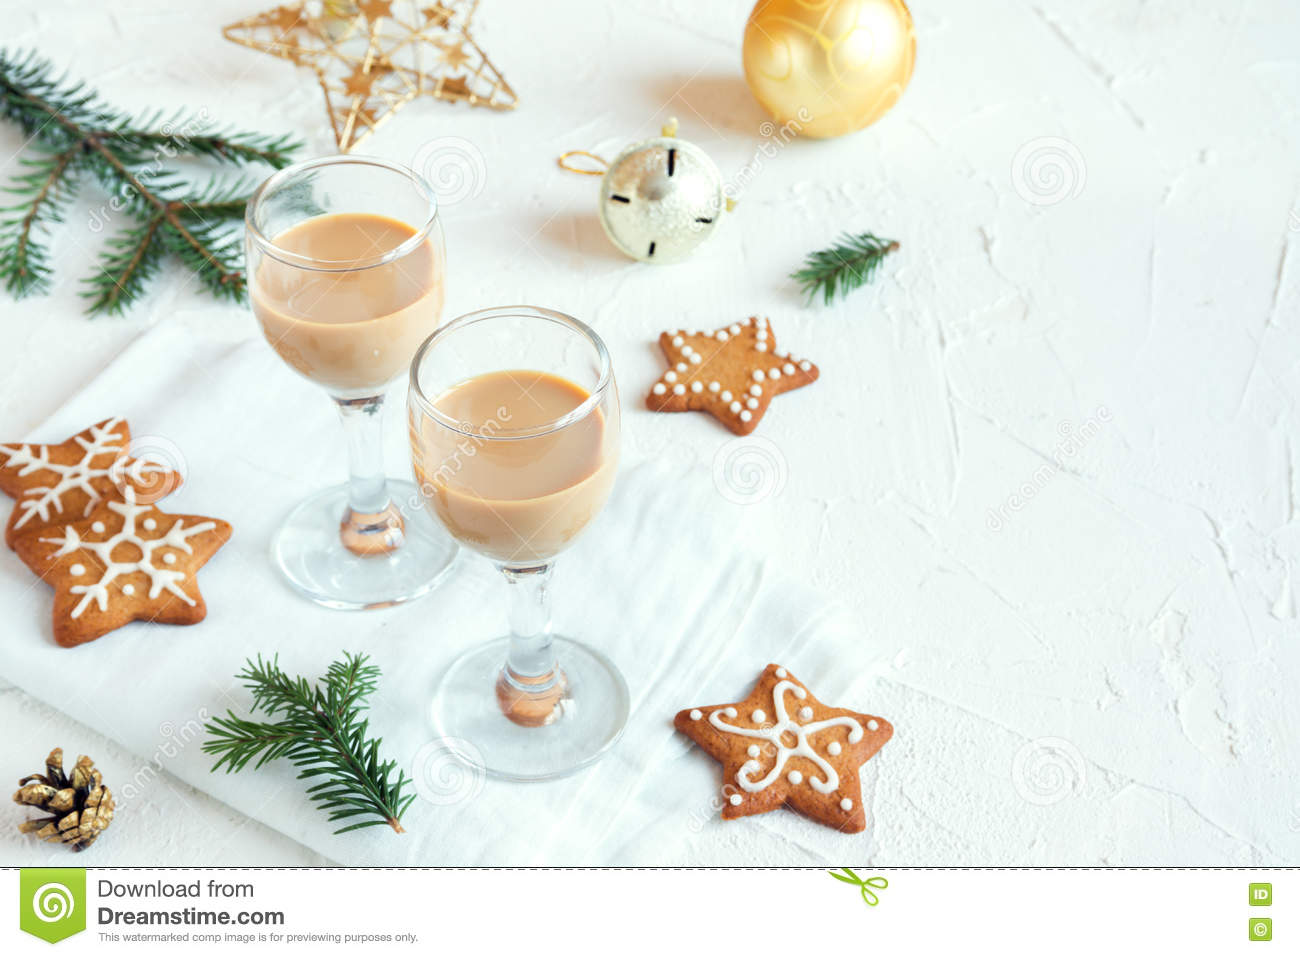 Irish cream coffee liqueur stock photo. Image of fresh - 81829122